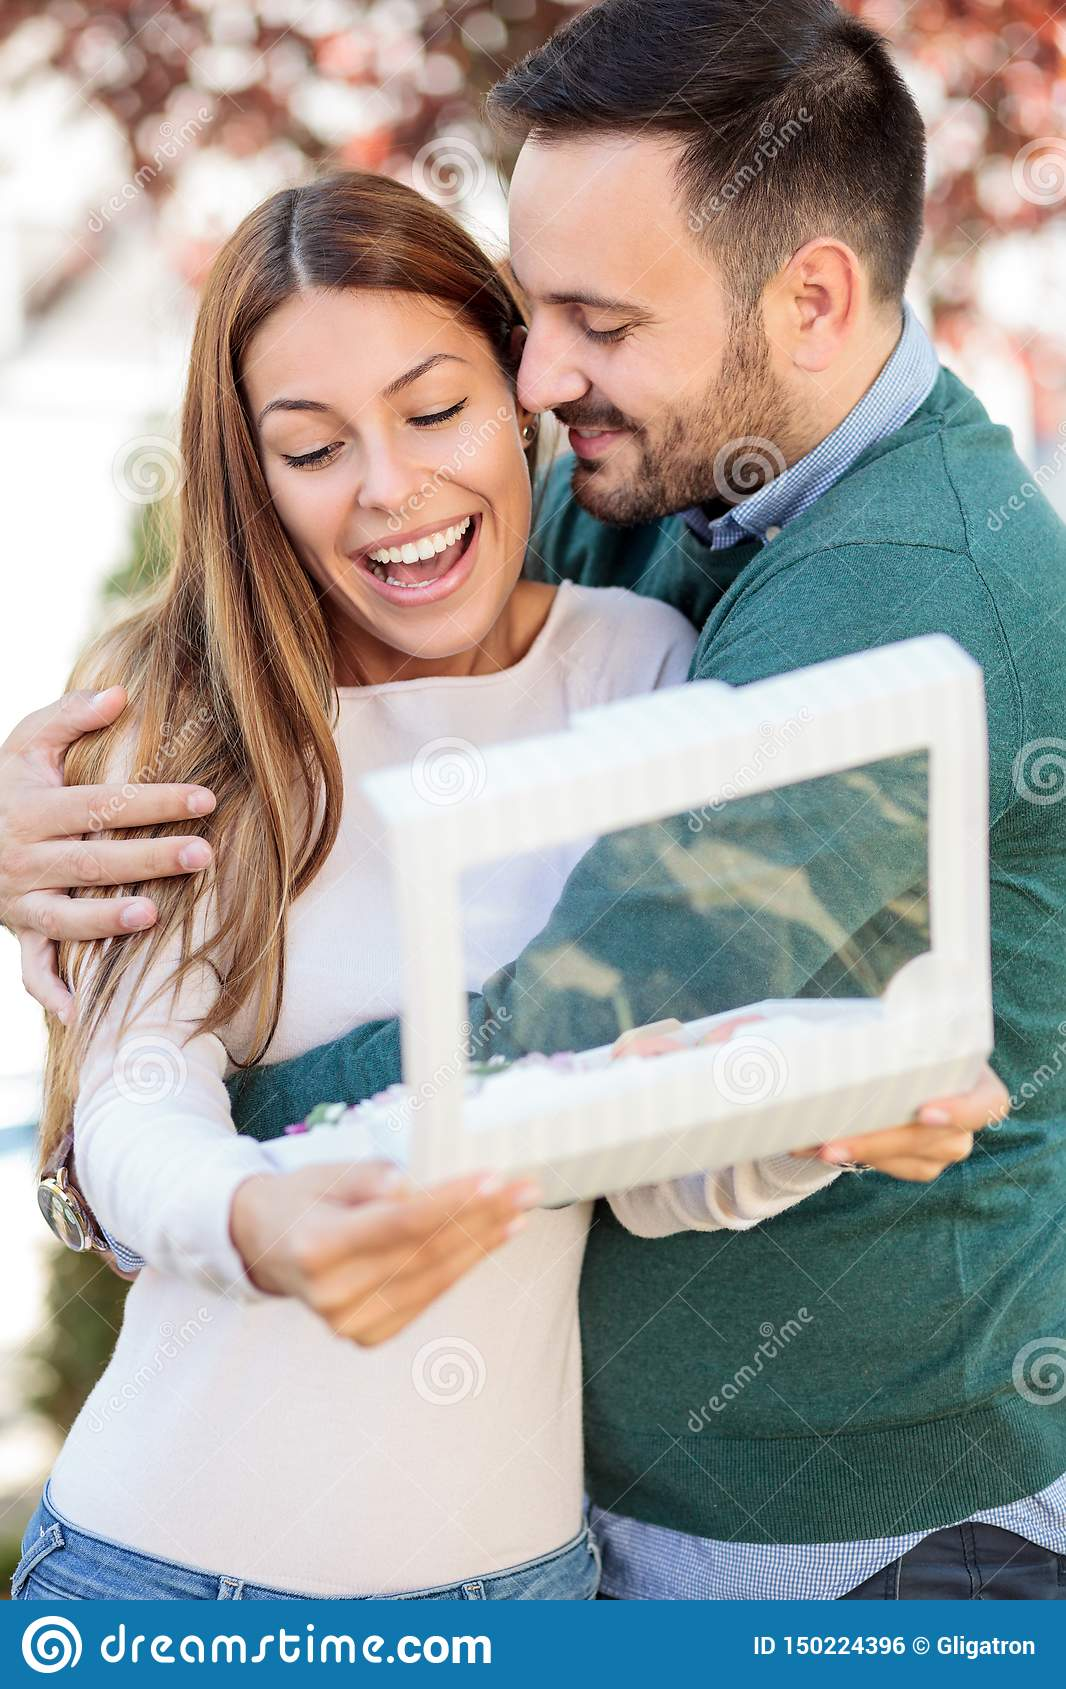 Happy young man hugging his wife or girlfriend. Woman is smiling after opening a gift box